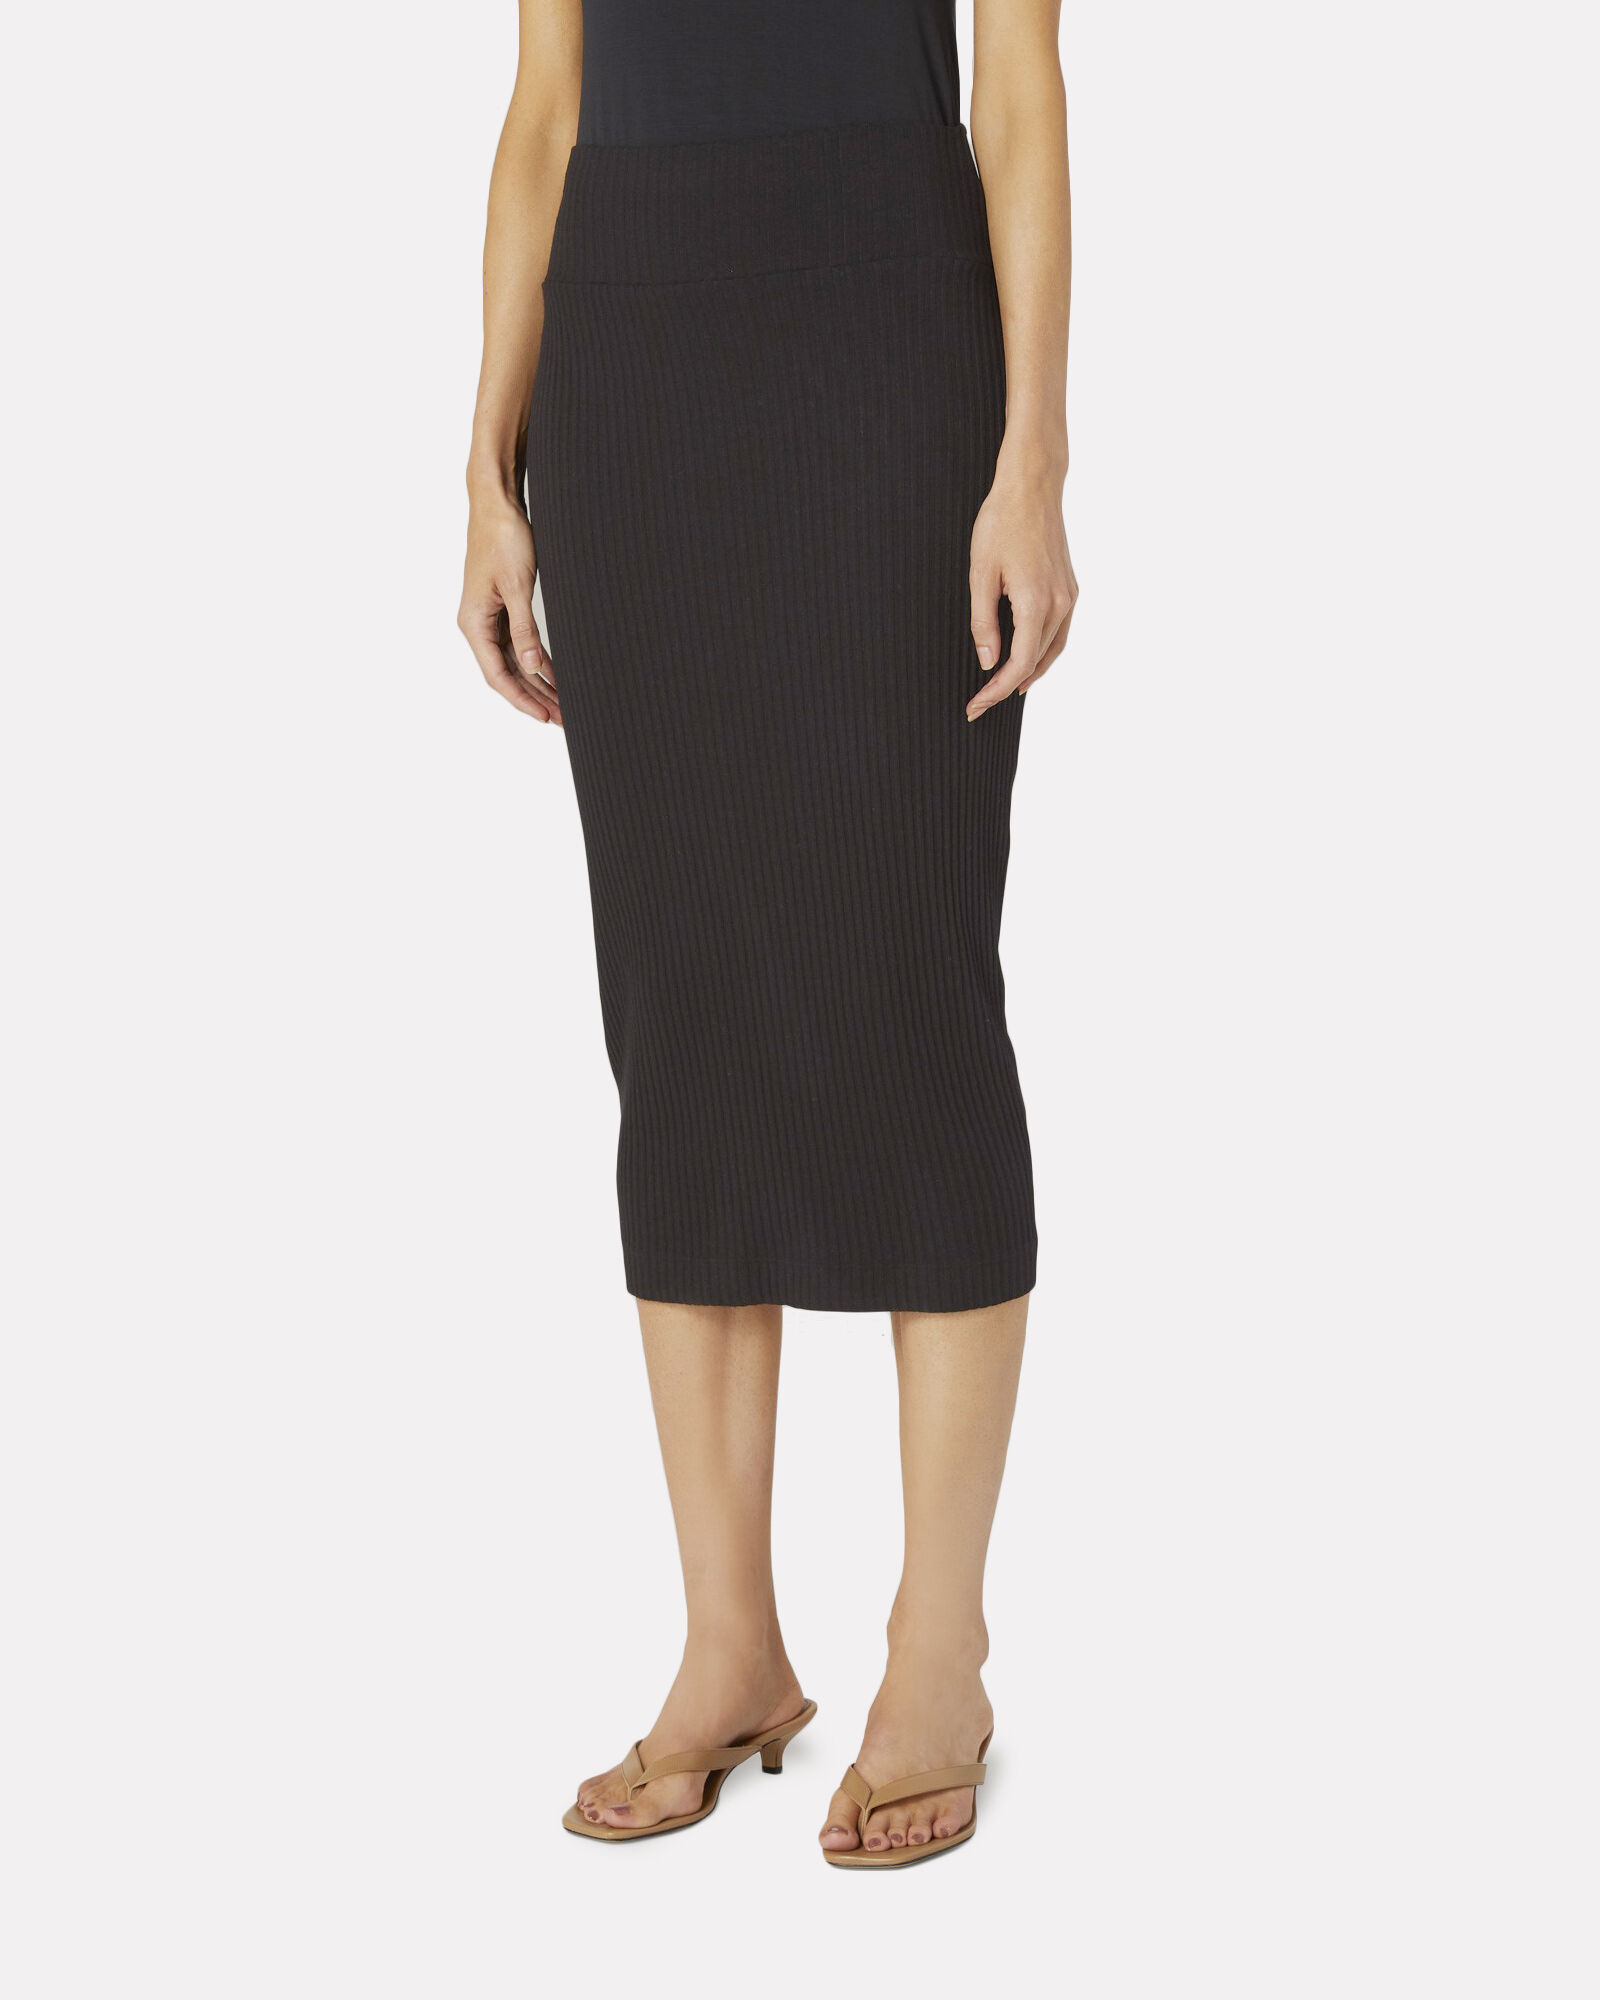 Rib Knit Cotton Pencil Skirt, BLACK, hi-res